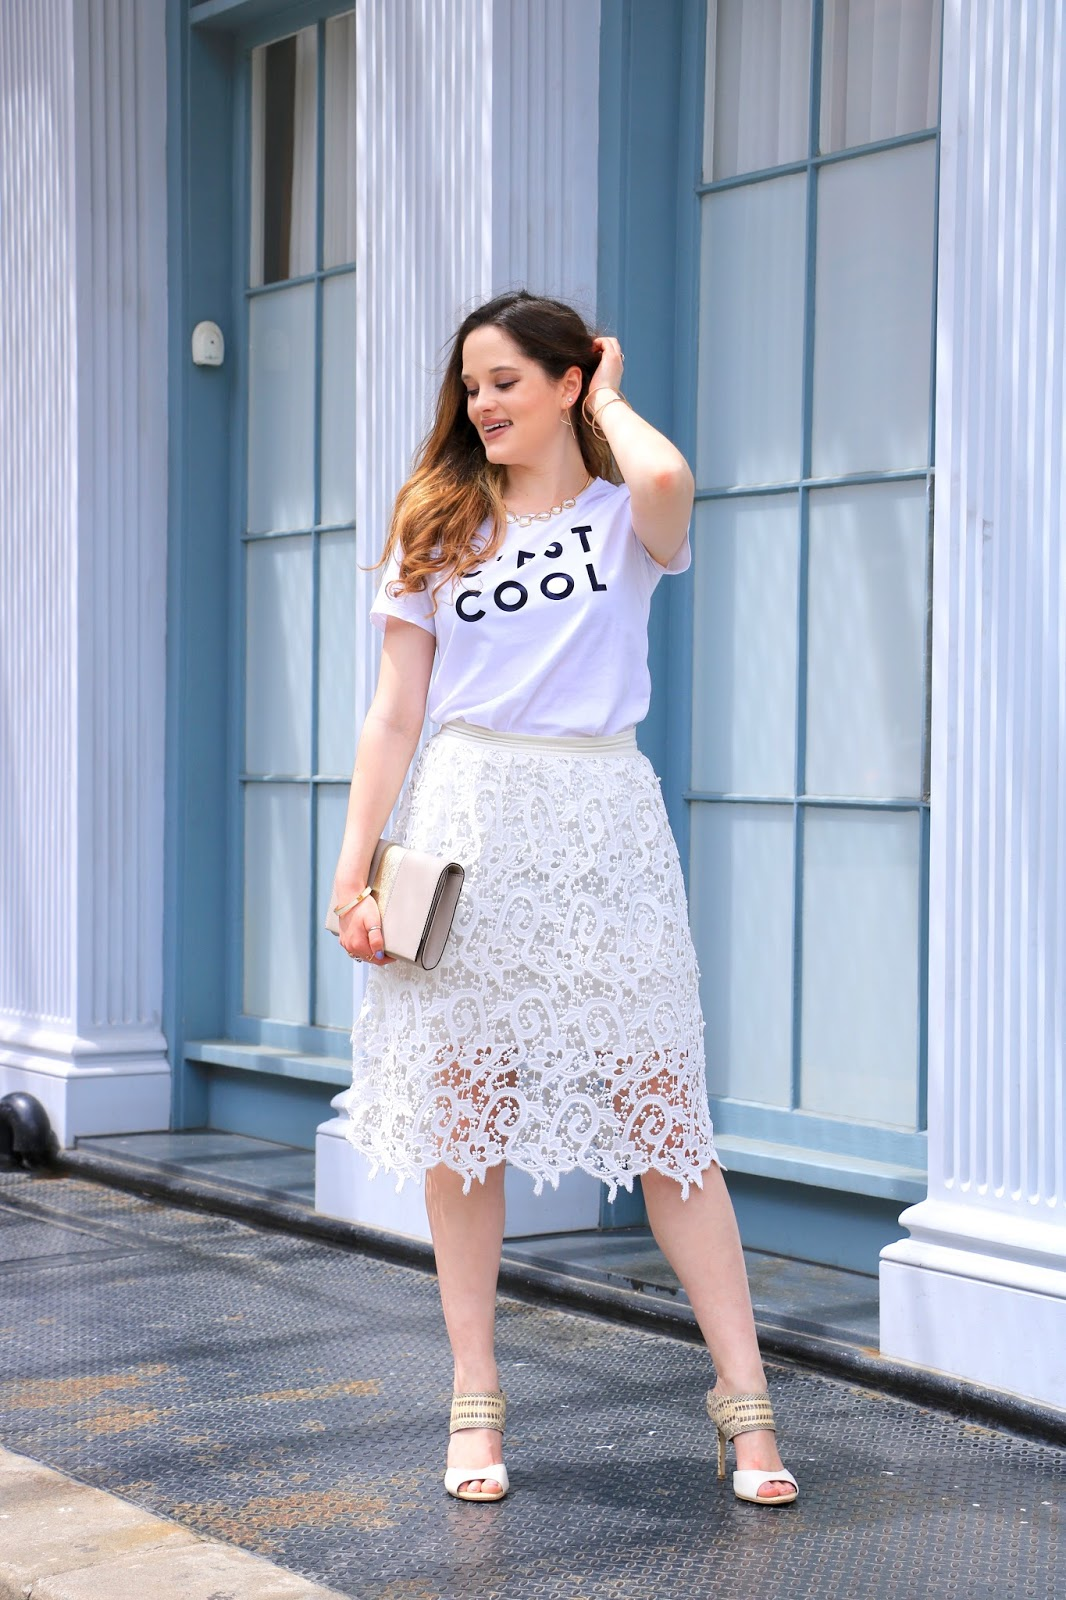 nyc fashion blogger Kathleen Harper wearing a graphic tee with a lace pencil skirt